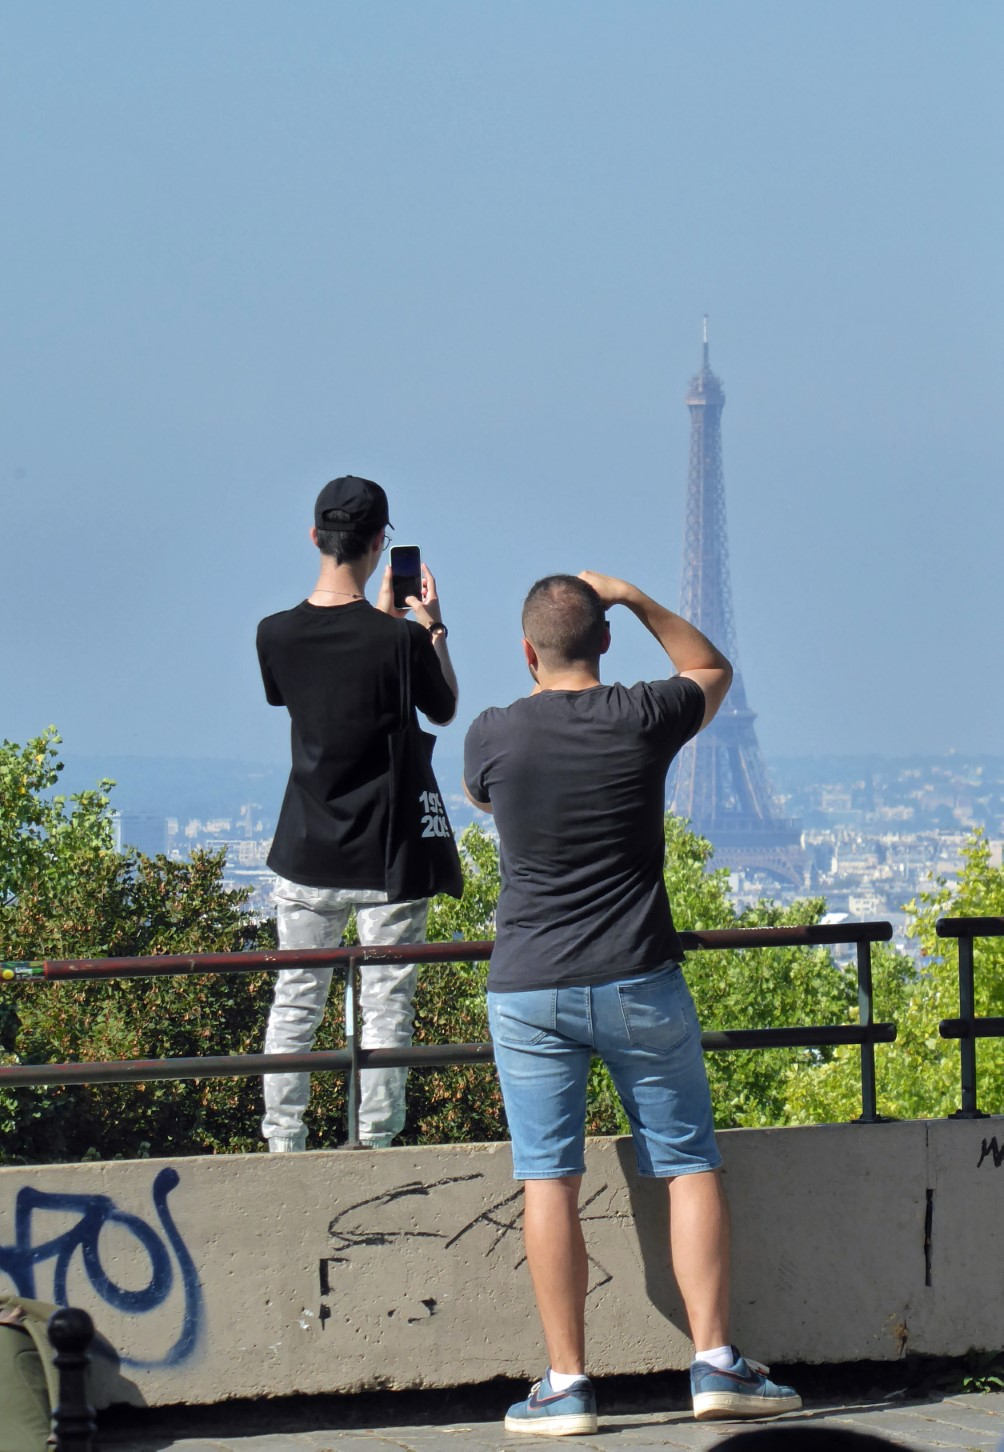 Two men taking photos of the Eiffel Tower, seen from behind